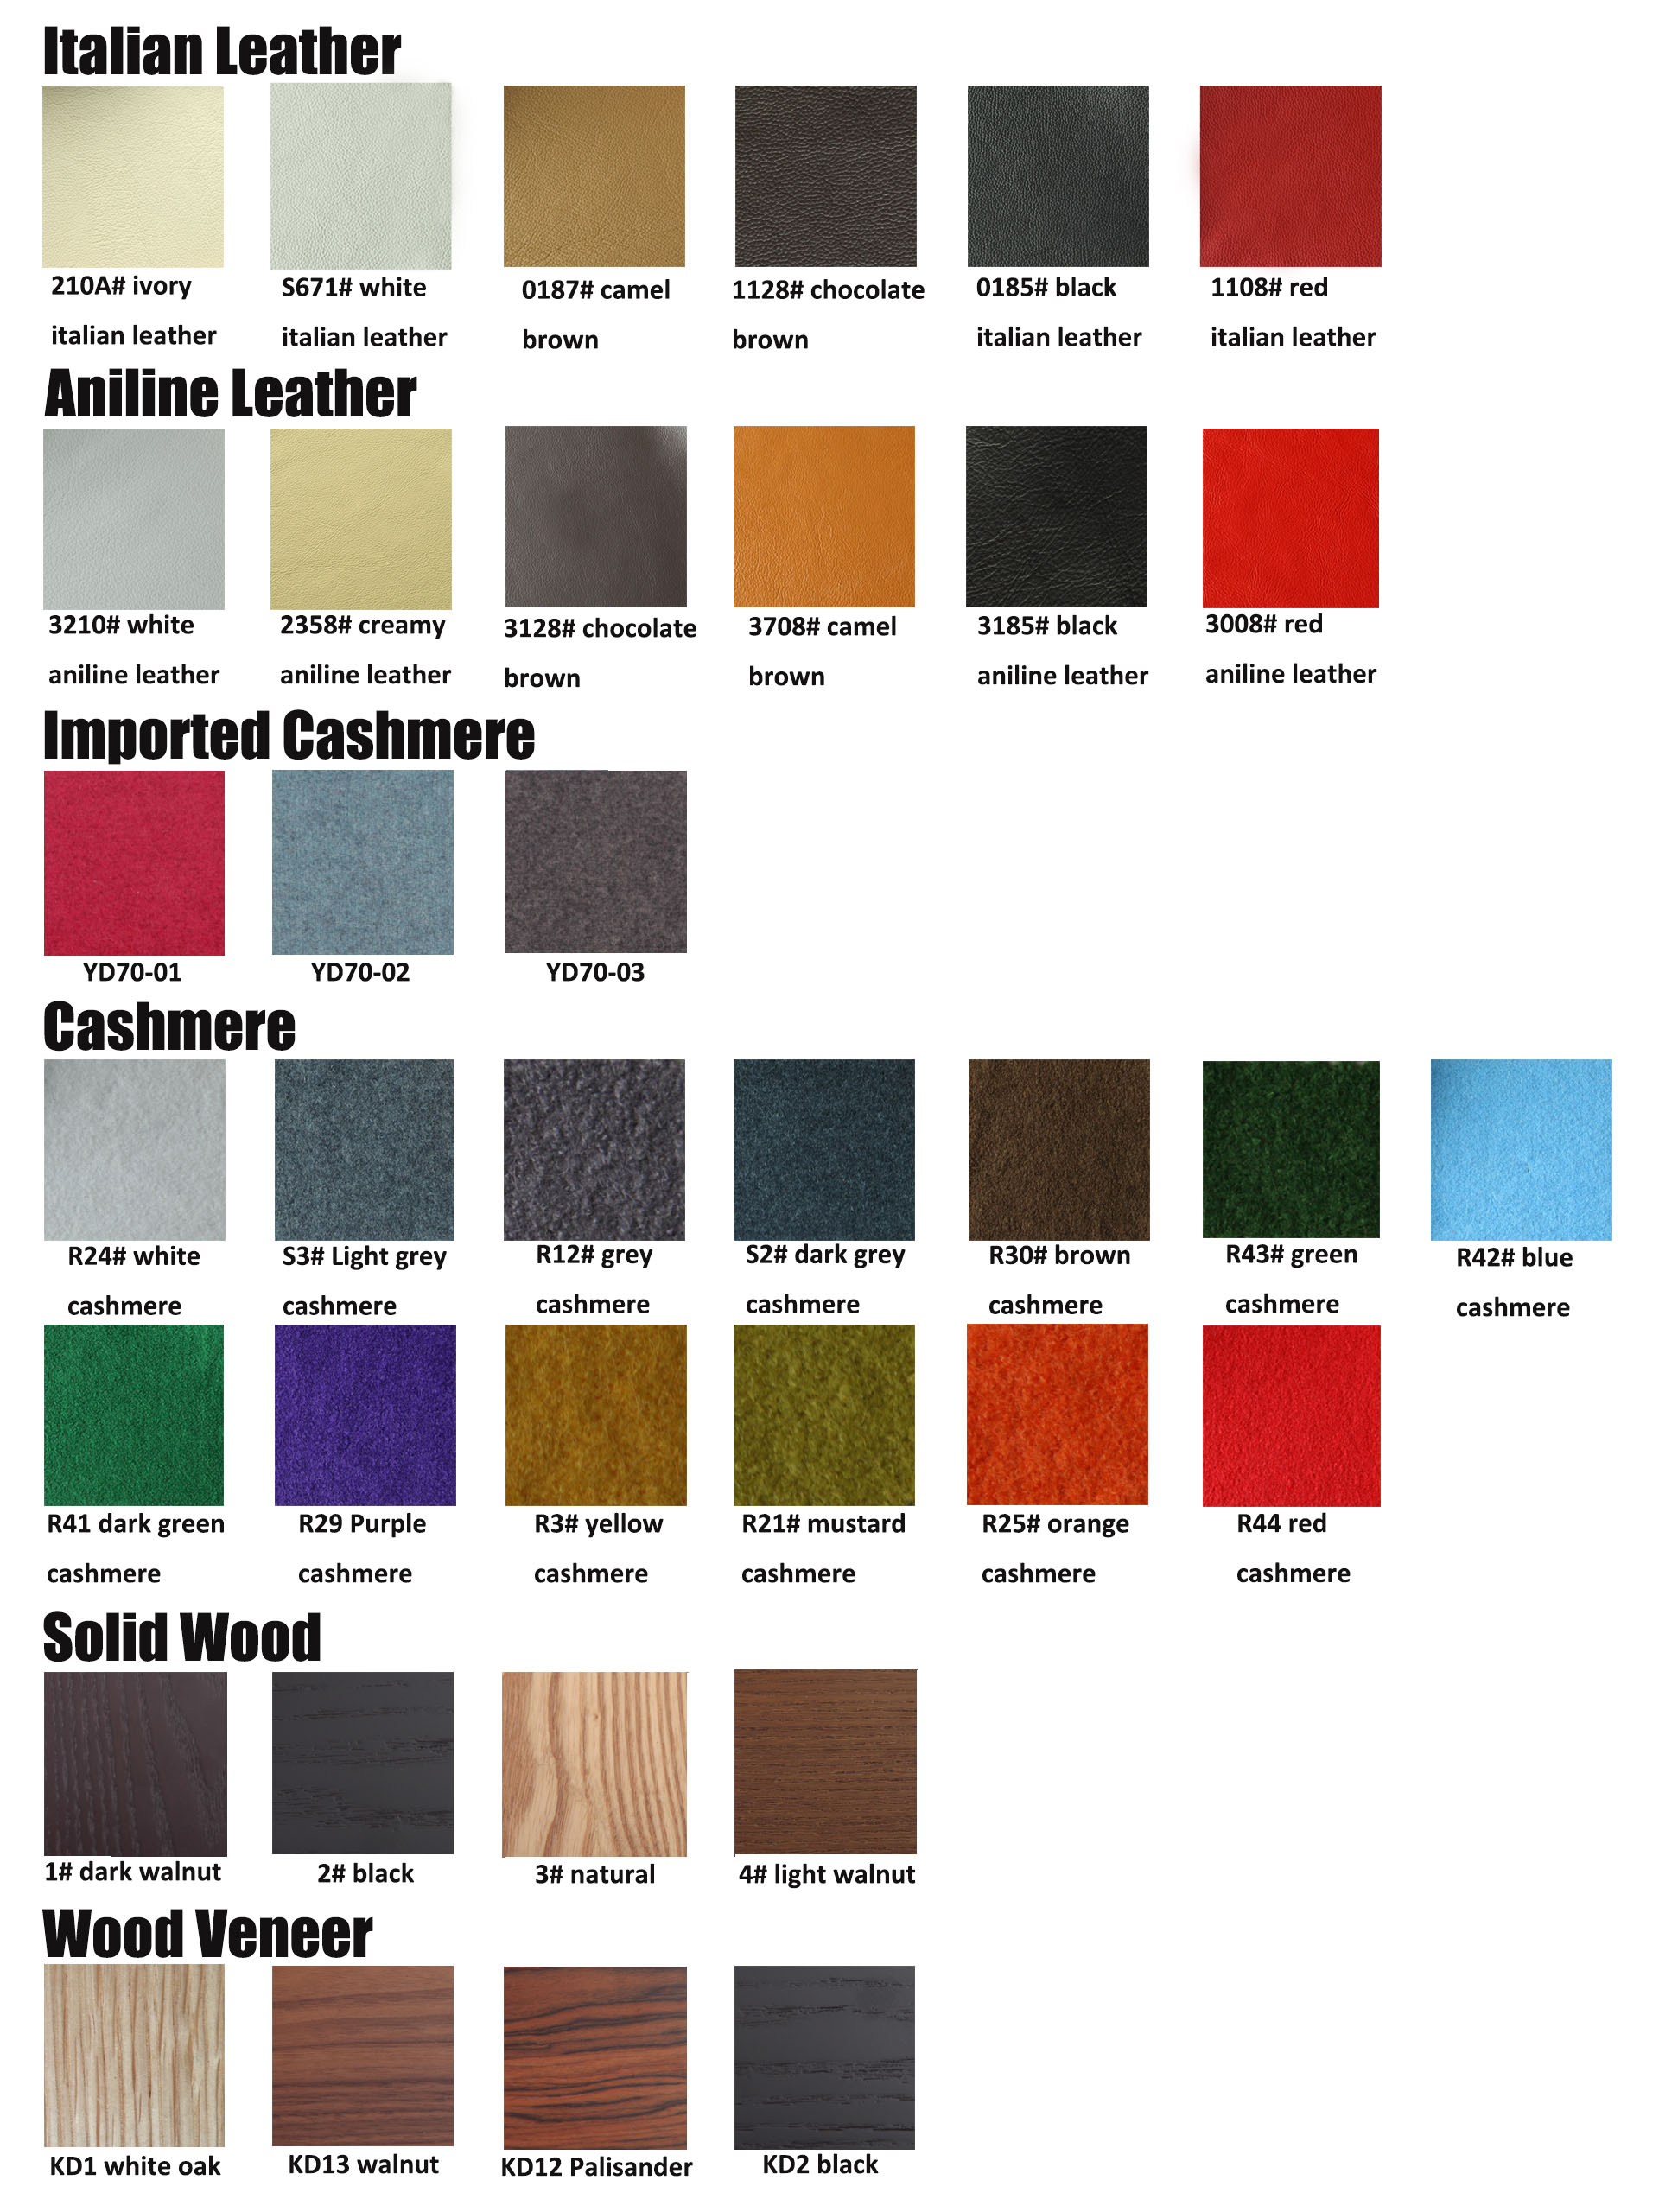 Leather Cashmere wood colors